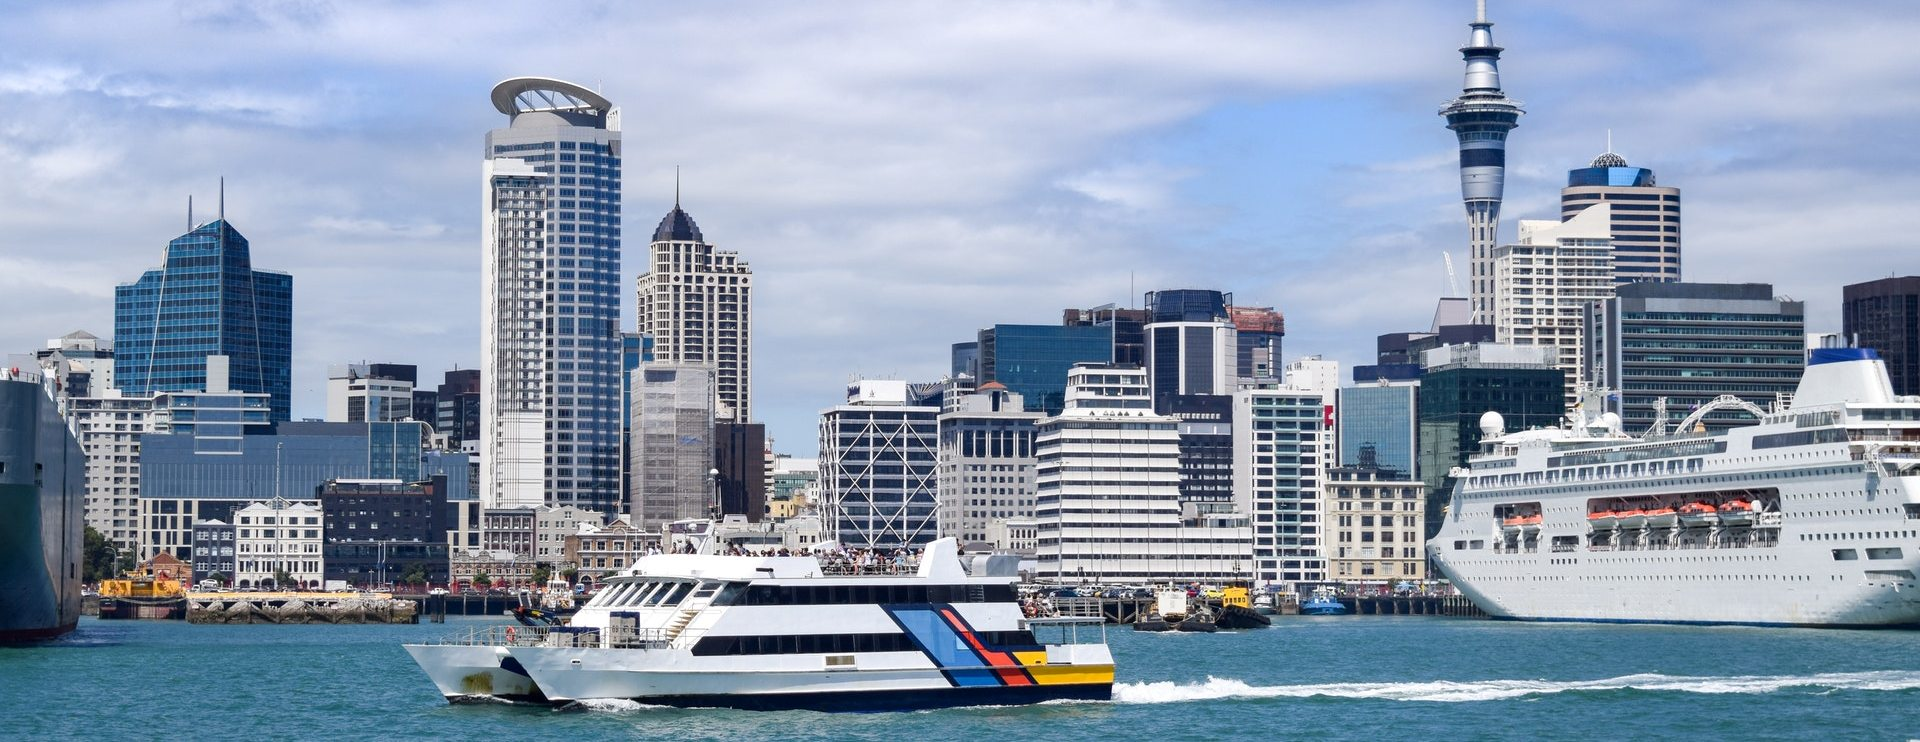 Auckland - The Best City Of New Zealand